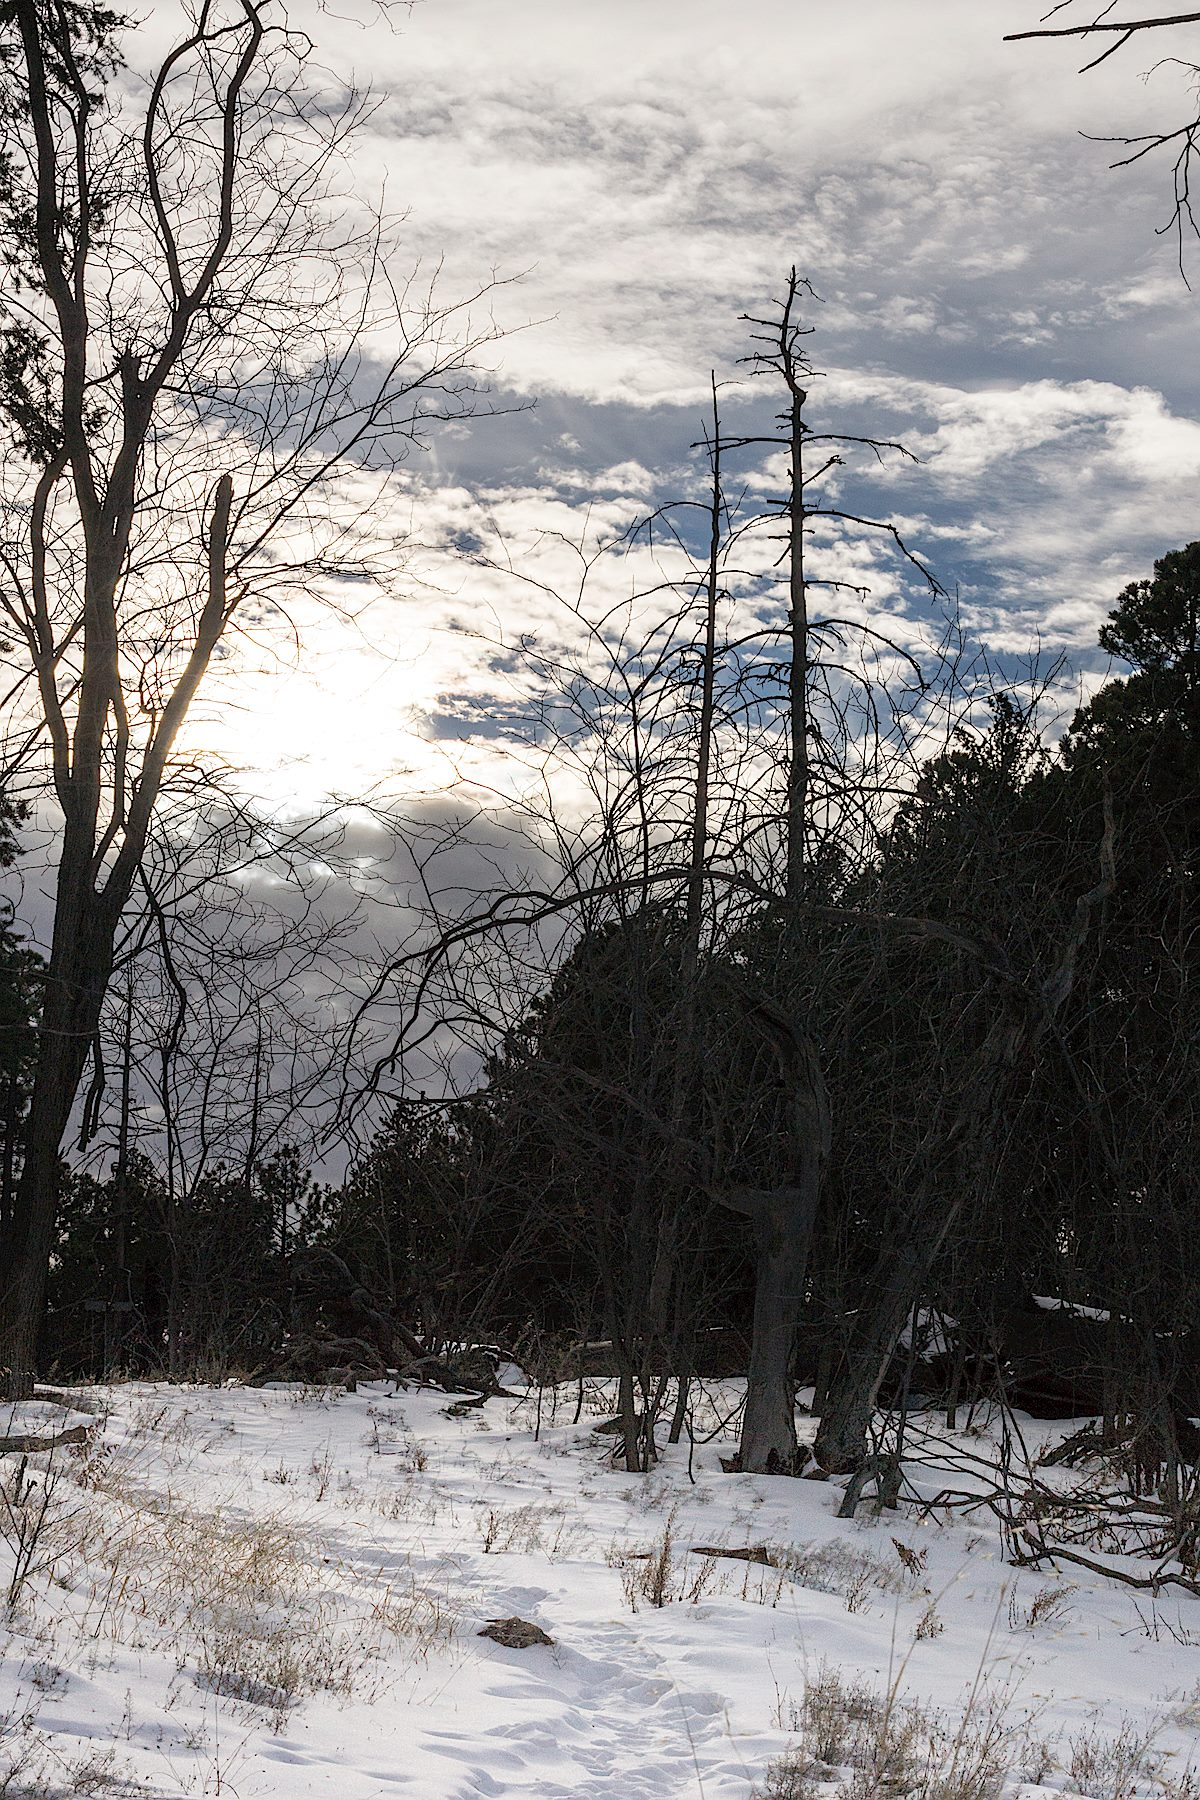 Snow at the junction of the Kellogg Mountain, Butterfly and Bigelow Trails. December 2014